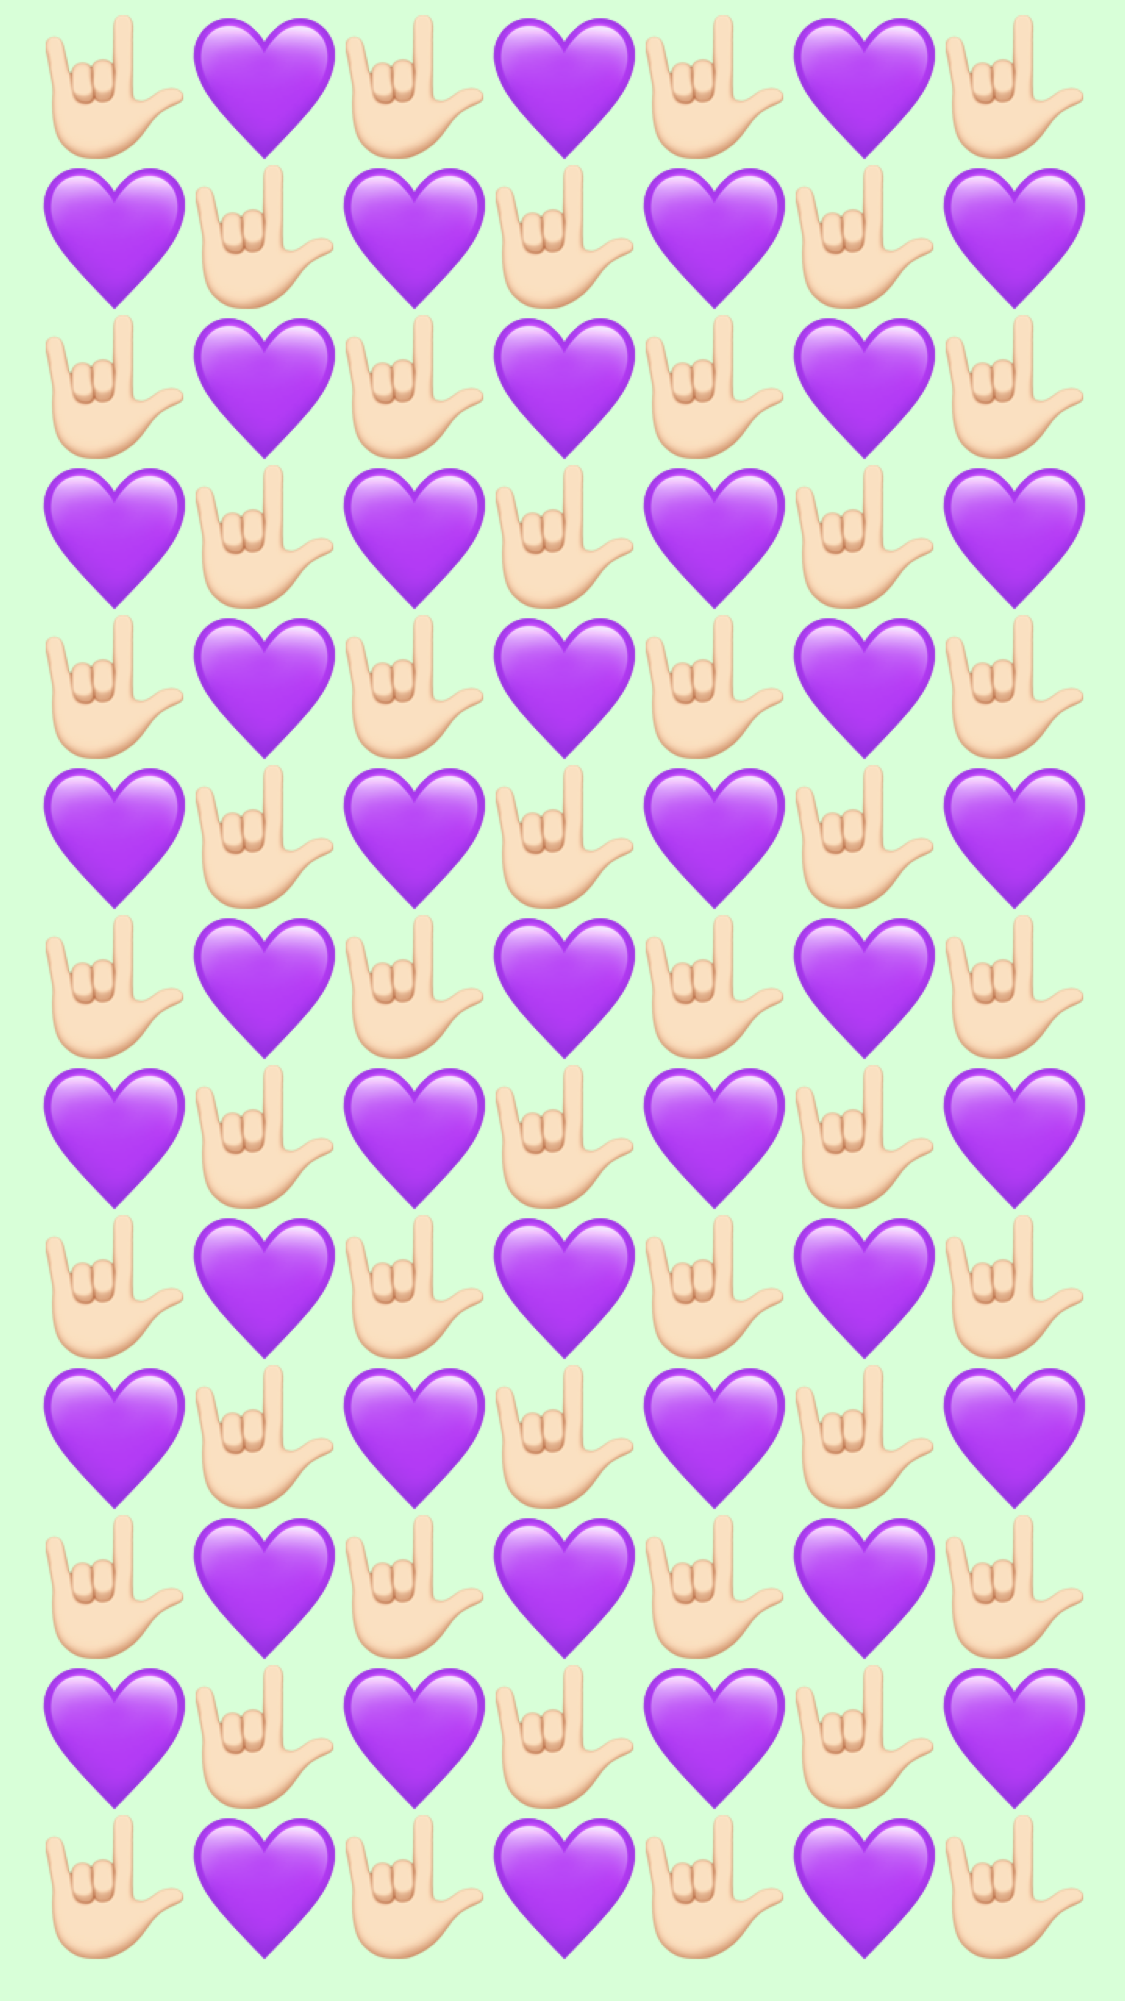 Wallpaper Iphone Purple Heart Flower Phone Wallpaper Wallpaper Iphone Cute Emoji Wallpaper